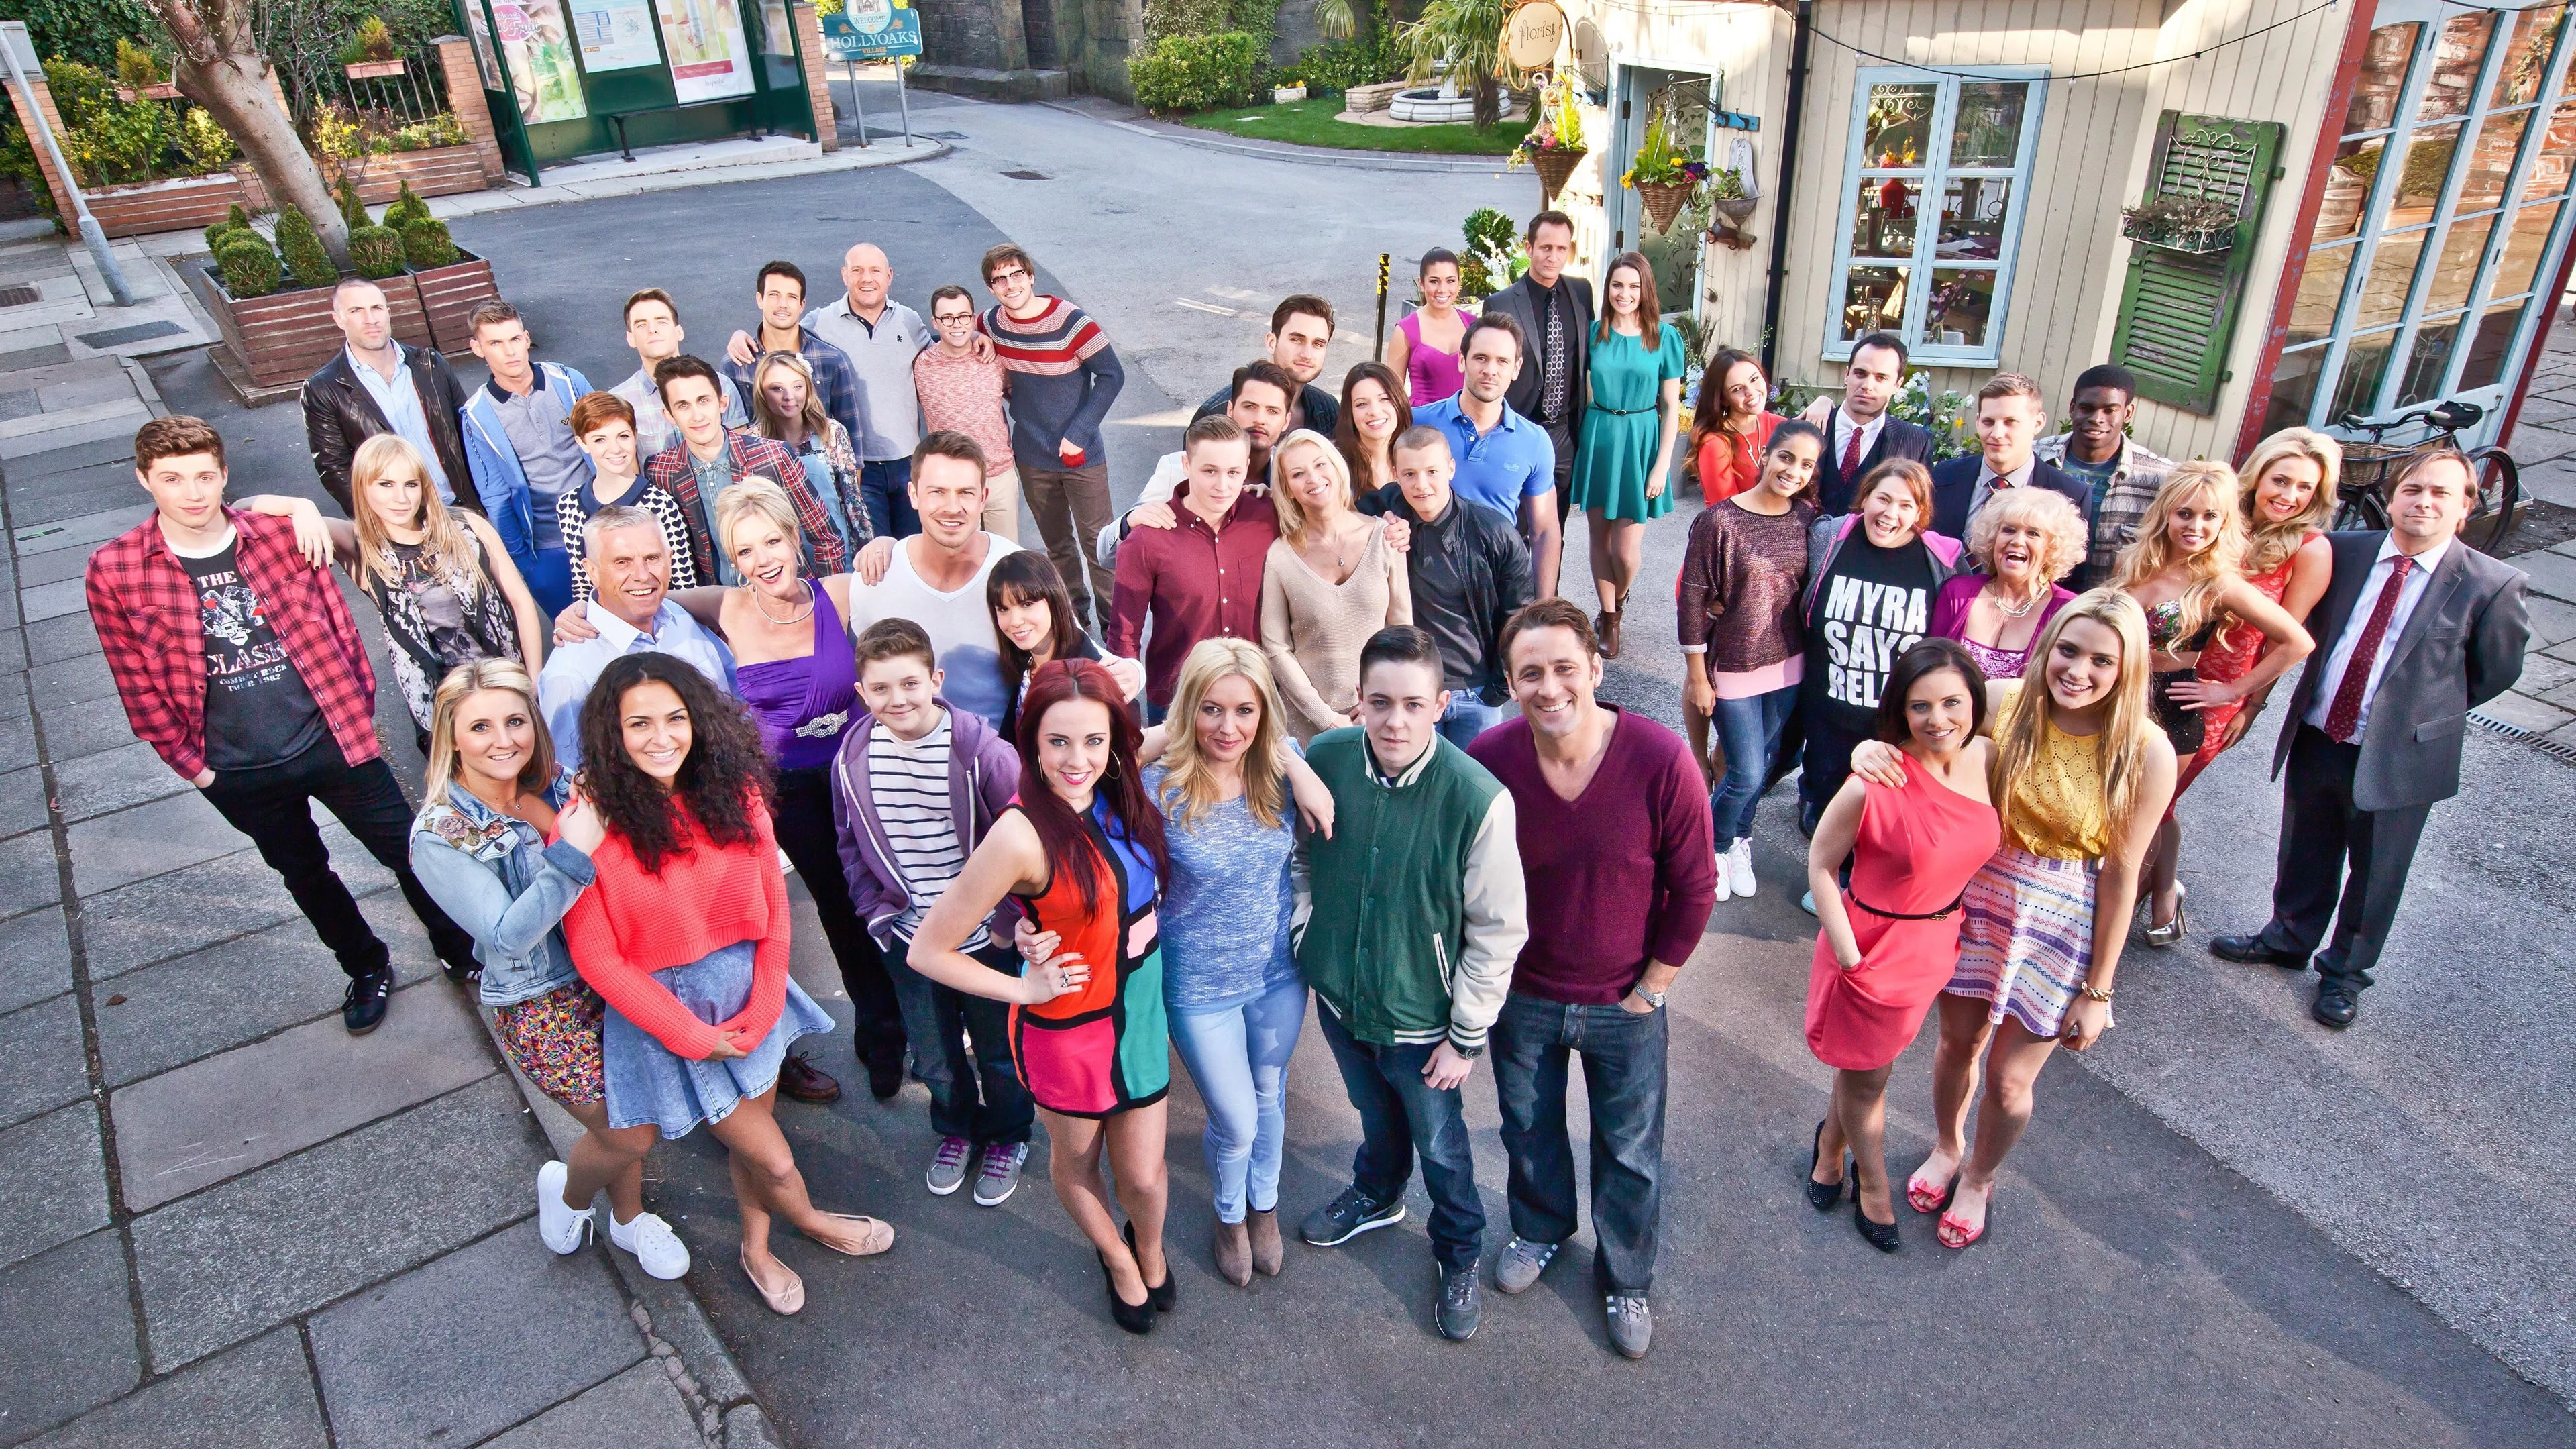 Hollyoaks - Season 20 Episode 208 : Plans Backfire